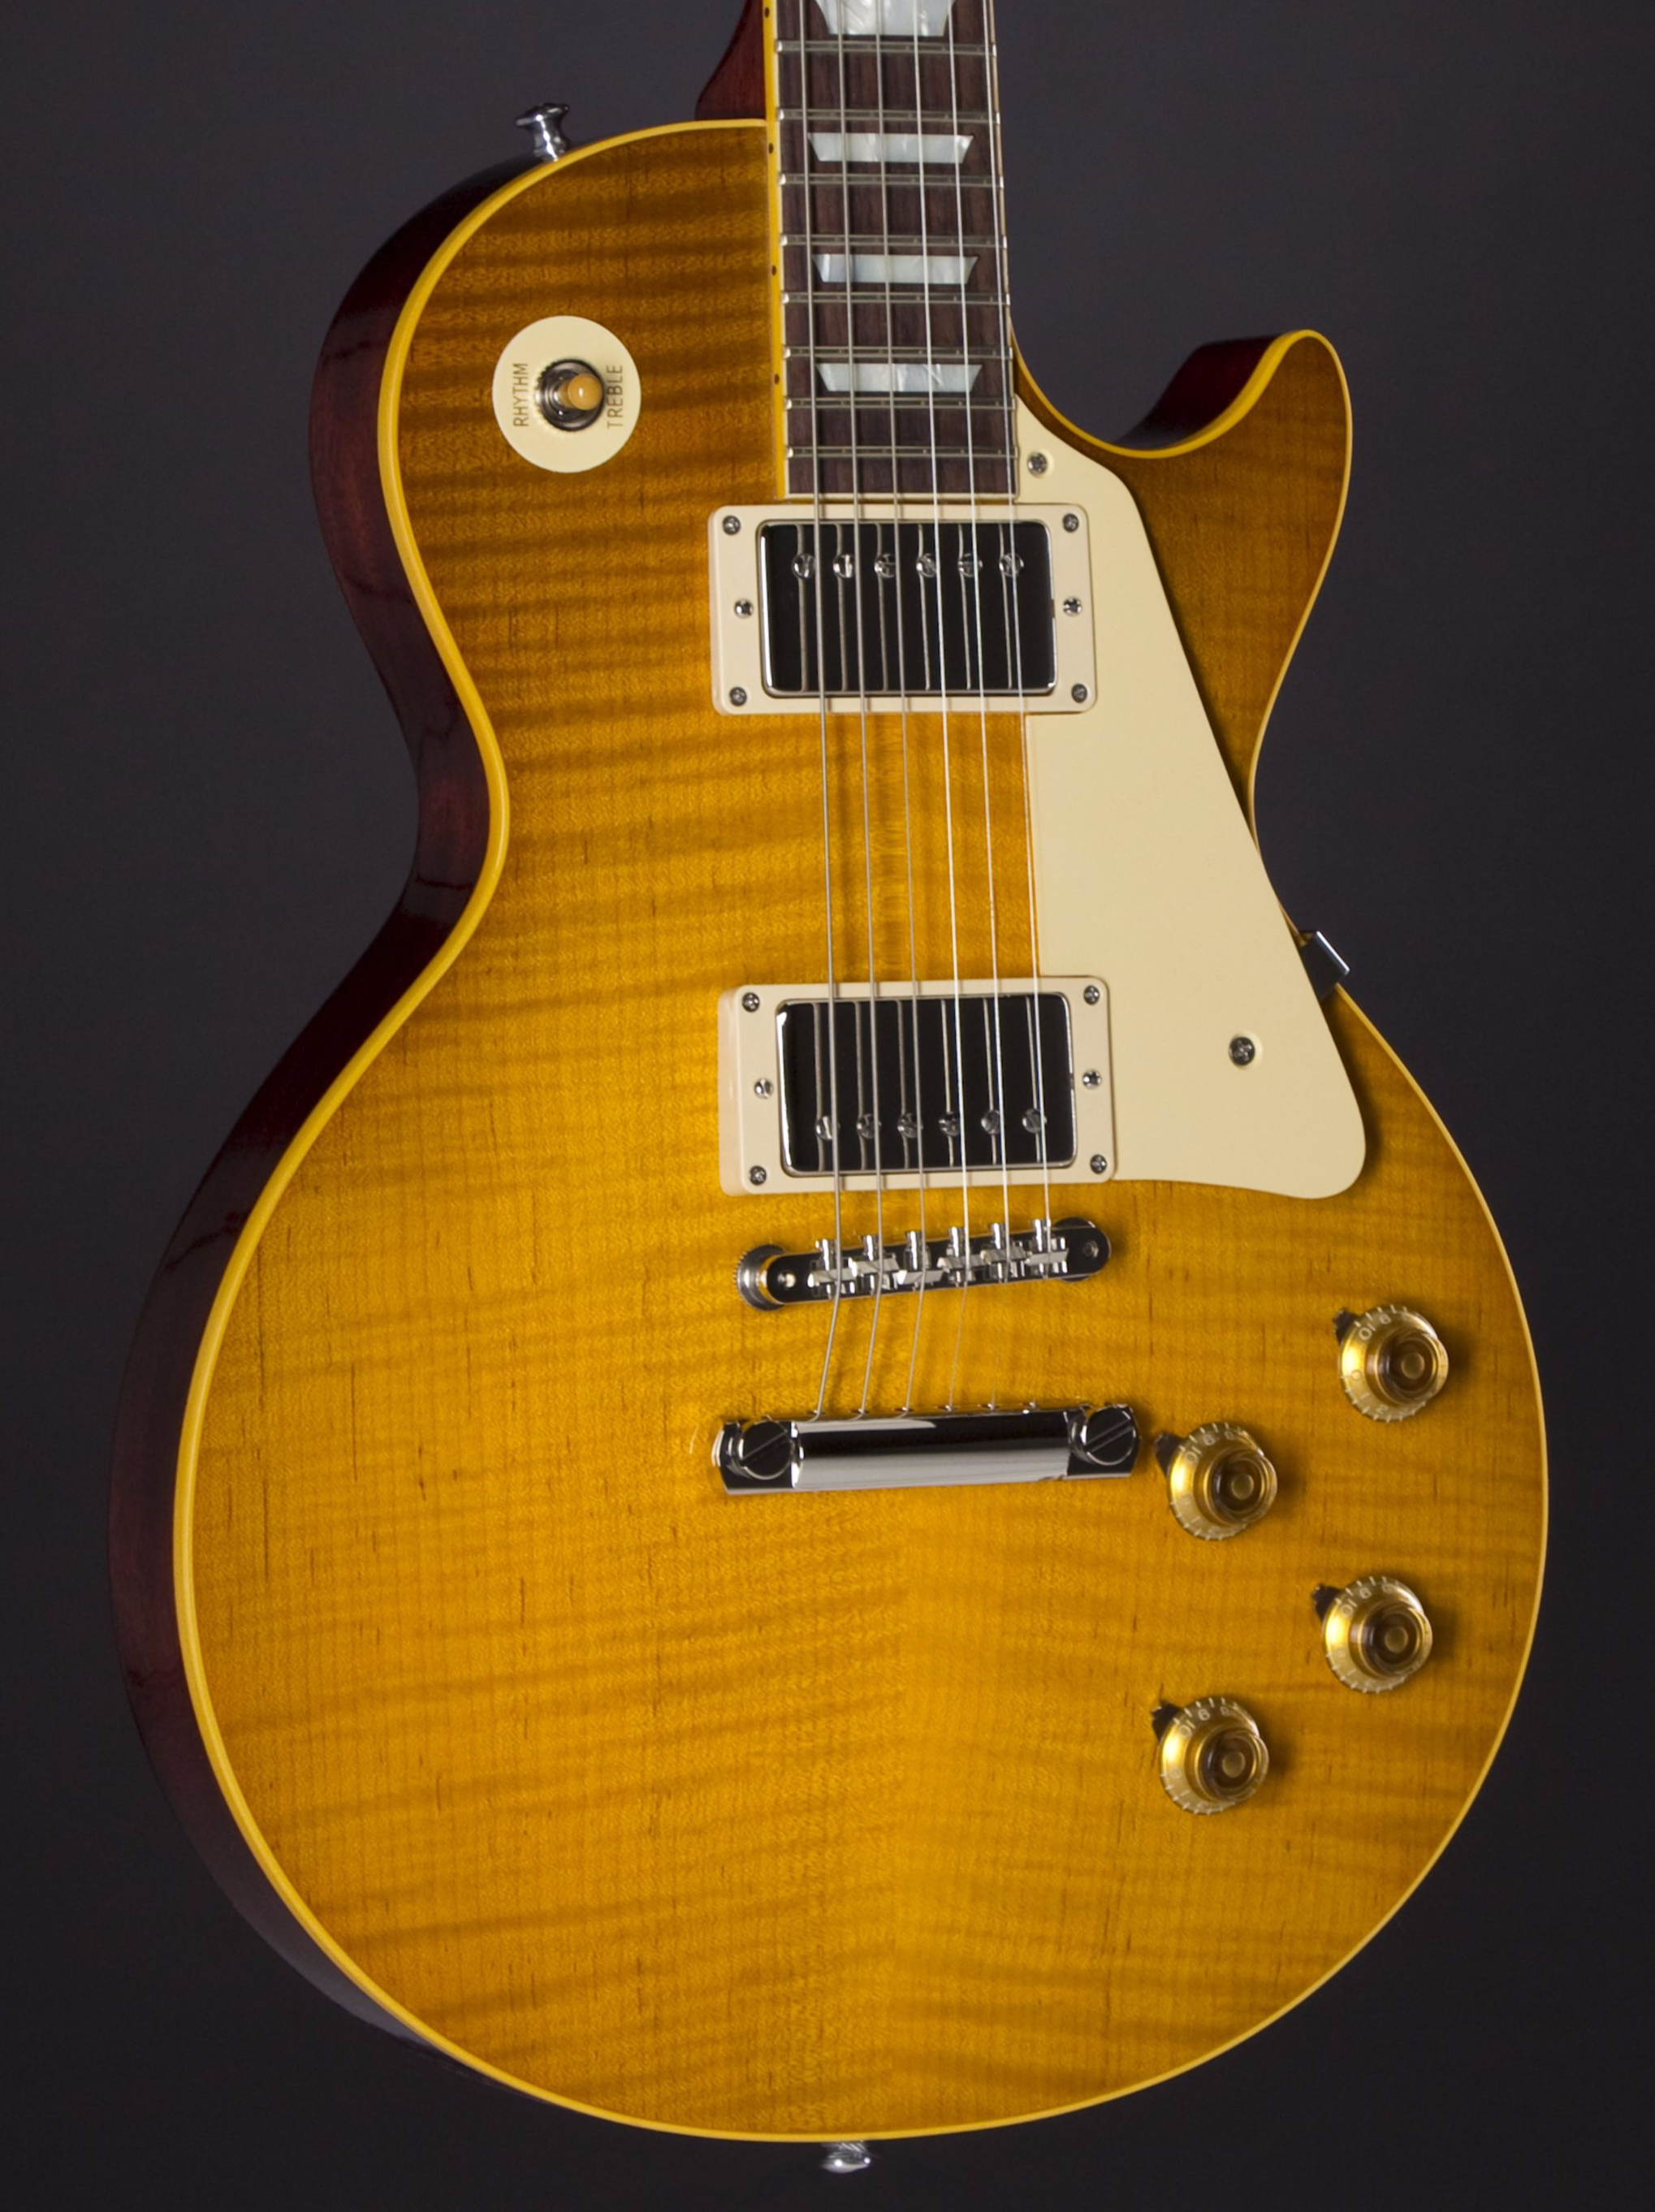 GIBSON Ace Frehley 1959 Les Paul Standard #AF148 Body Detail